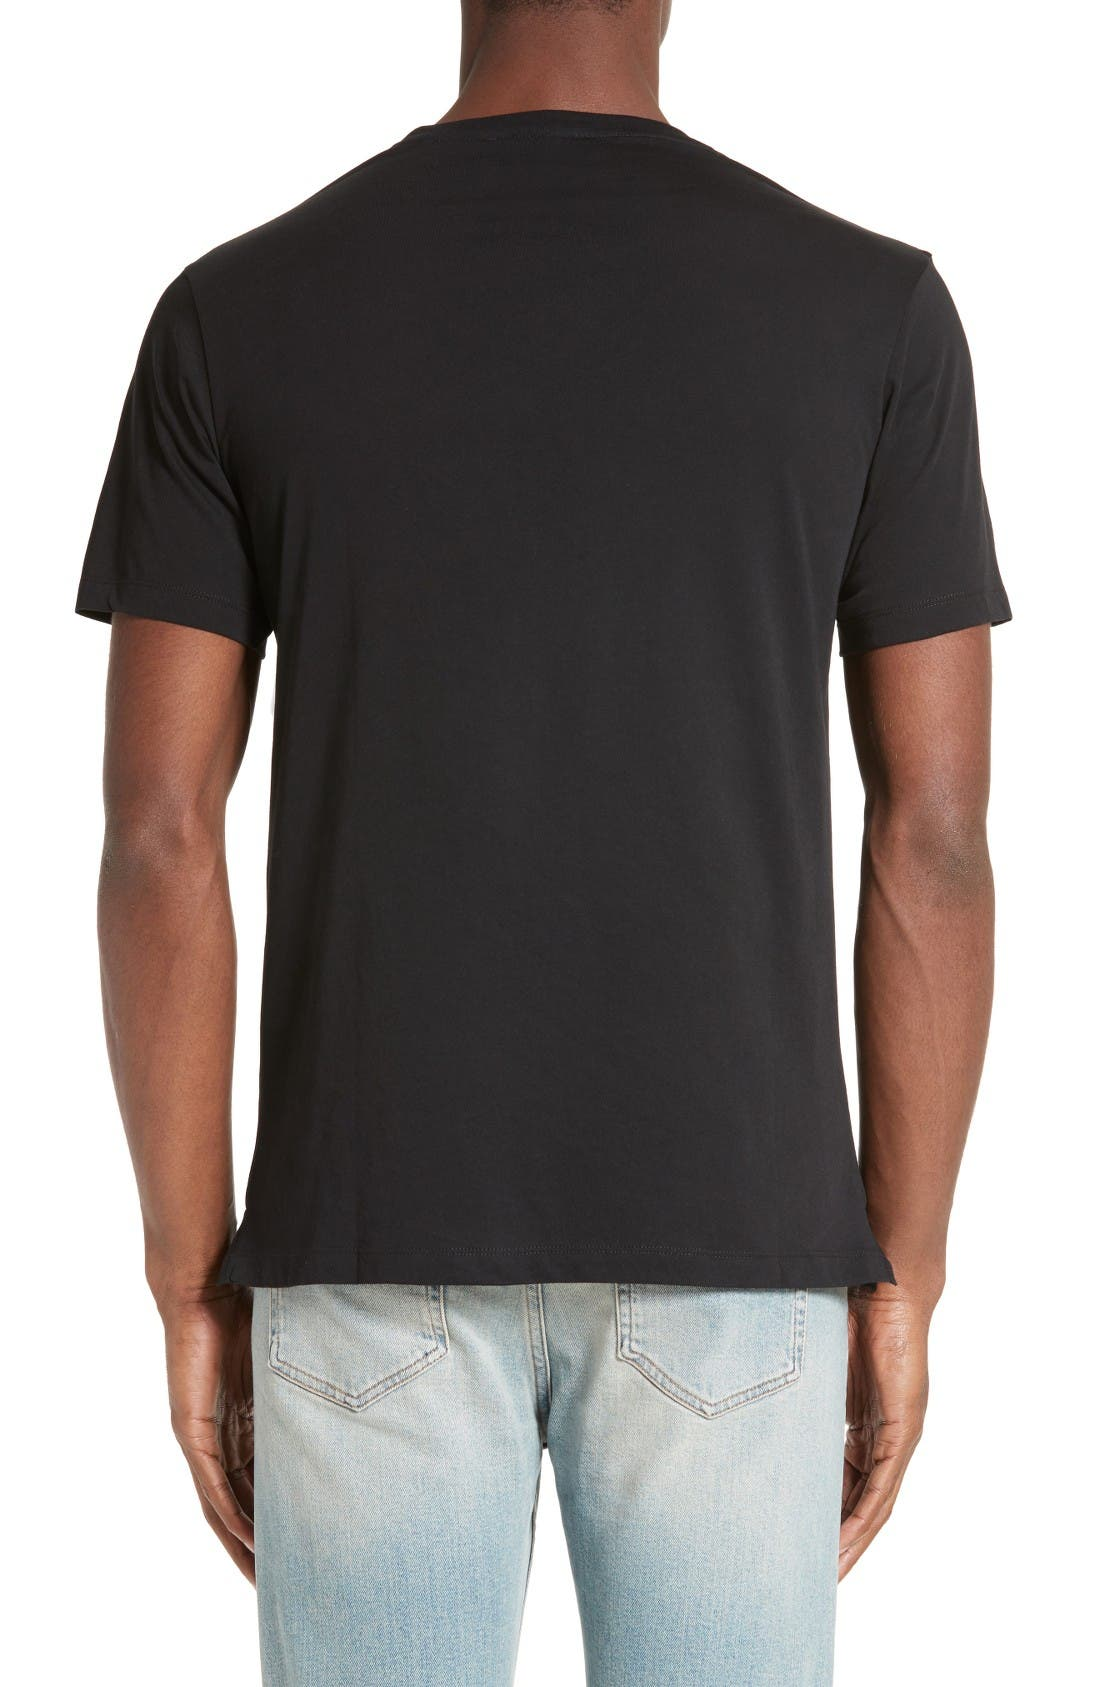 Alternate Image 2  - The Kooples Embroidered T-Shirt